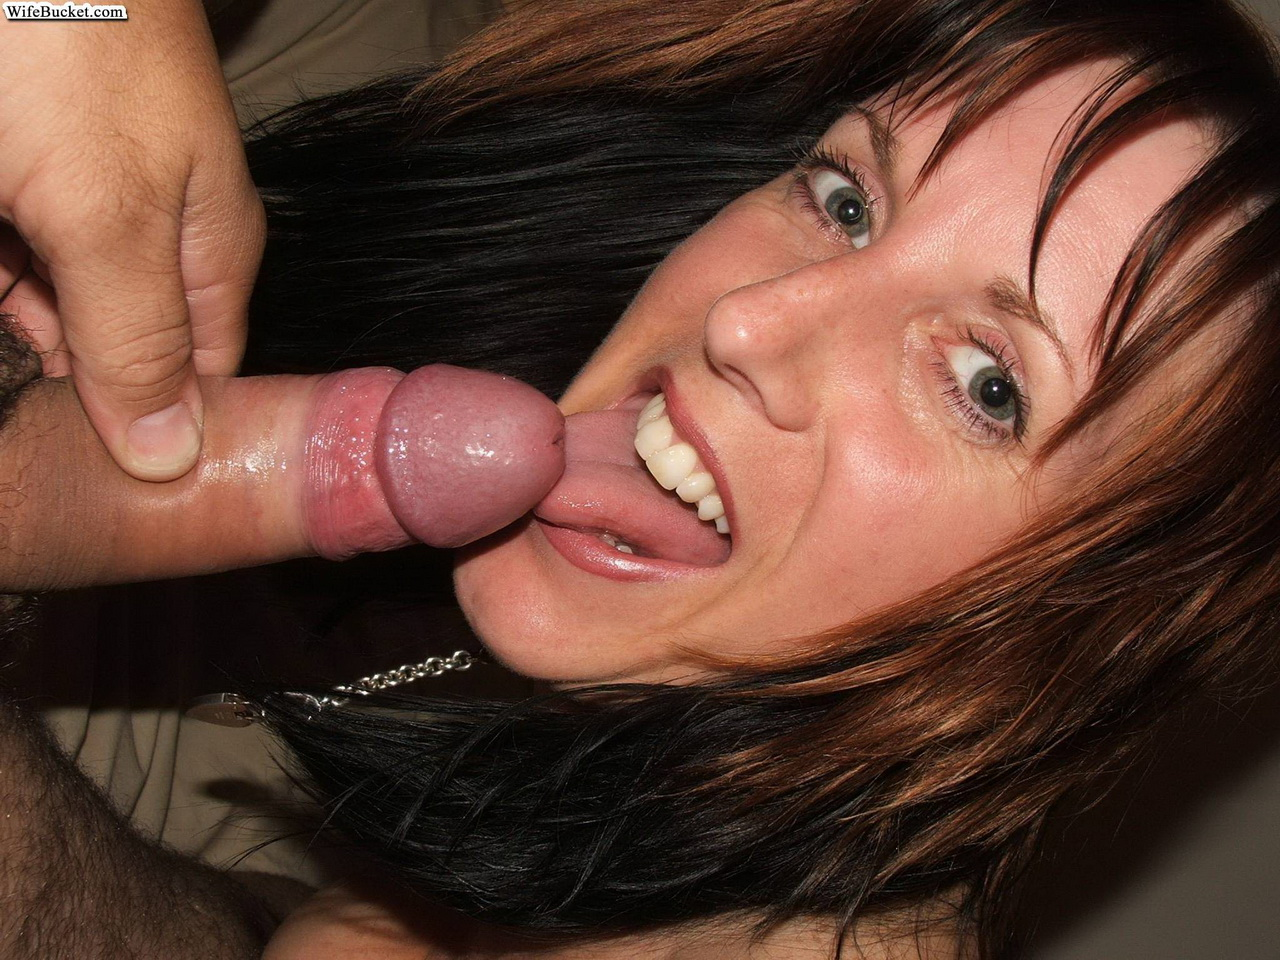 something also idea holly west cumshot compilation yes Choice